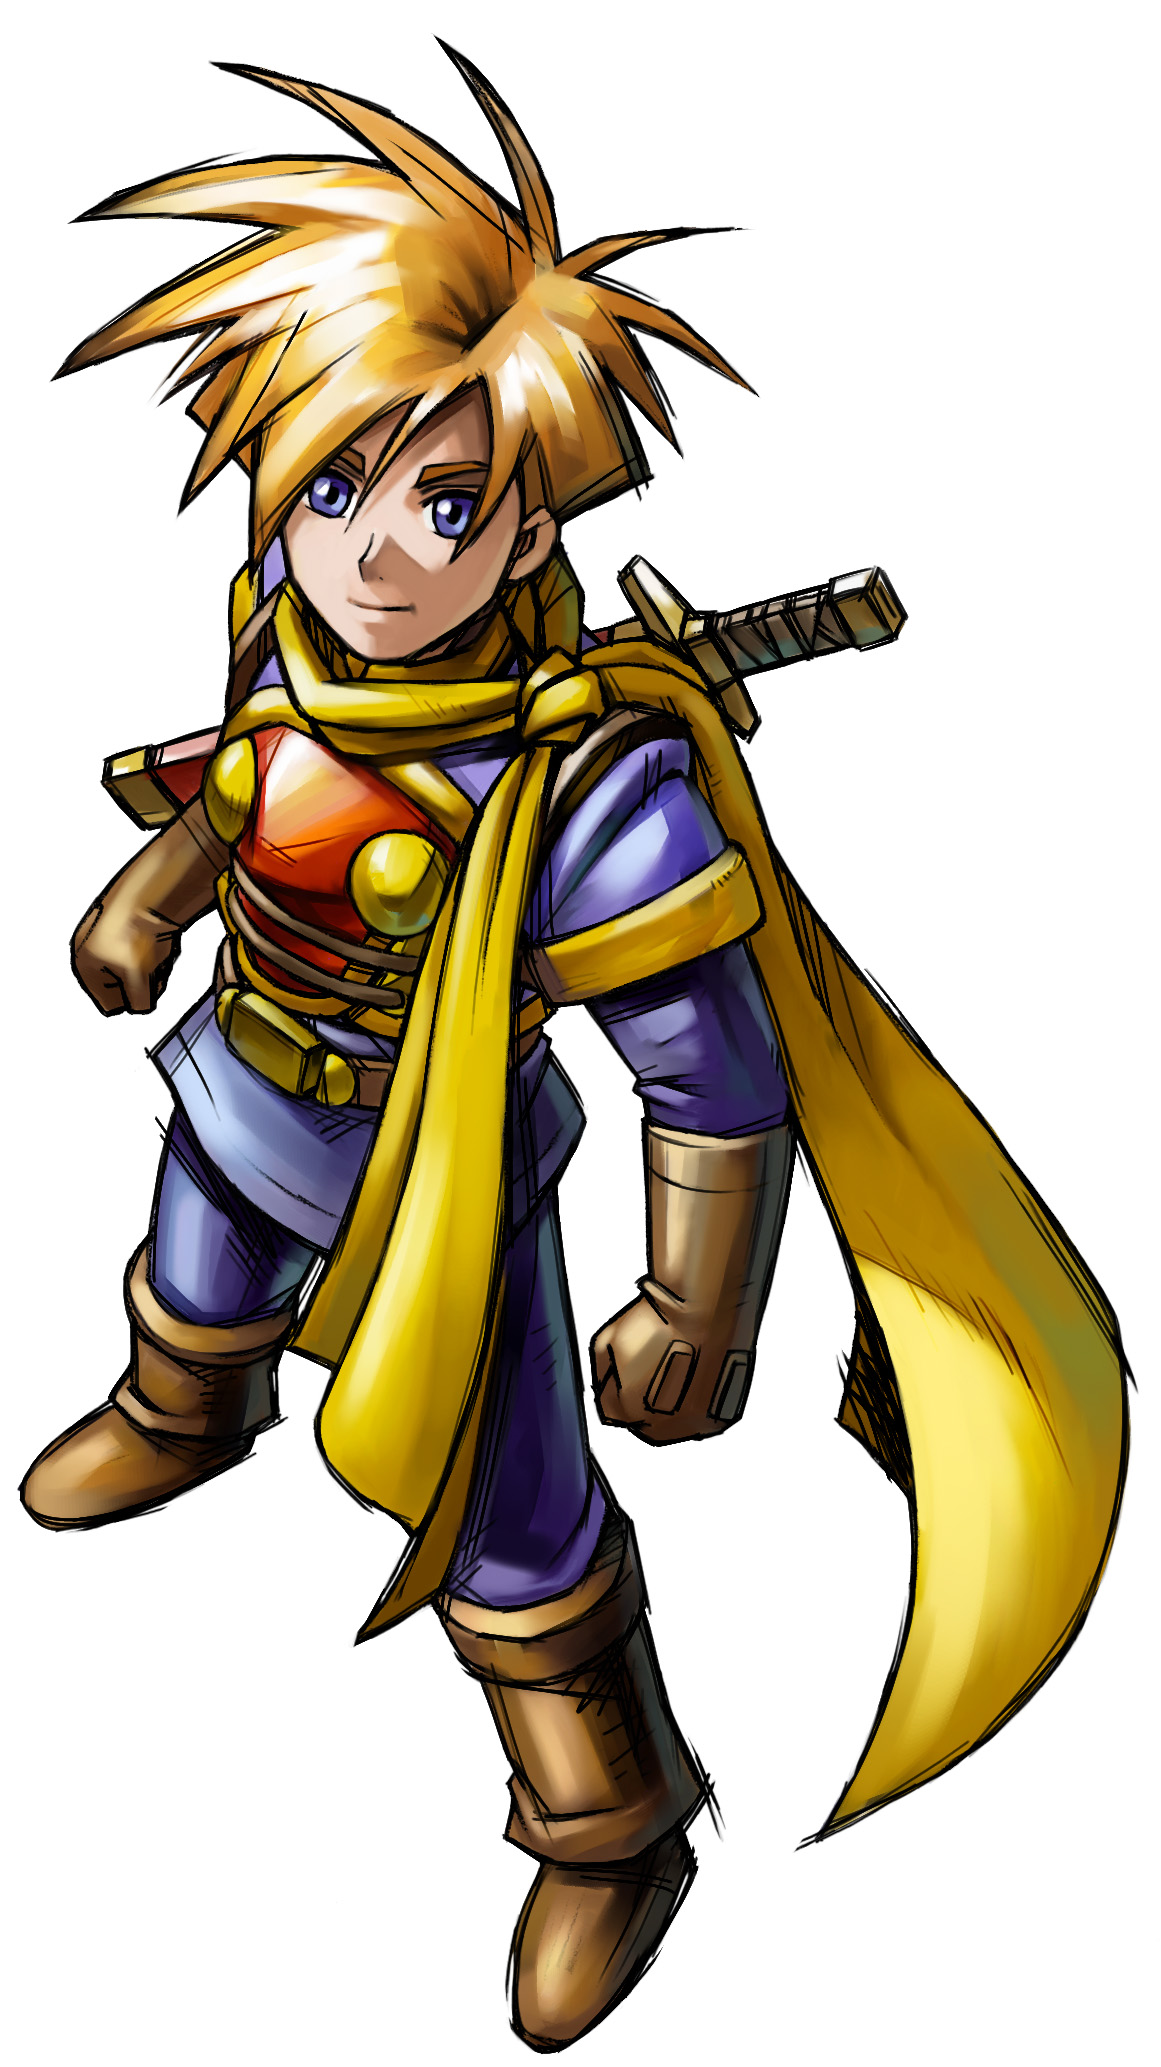 Isaac The Golden Sun Wiki Dark Dawn Lost Age Guides